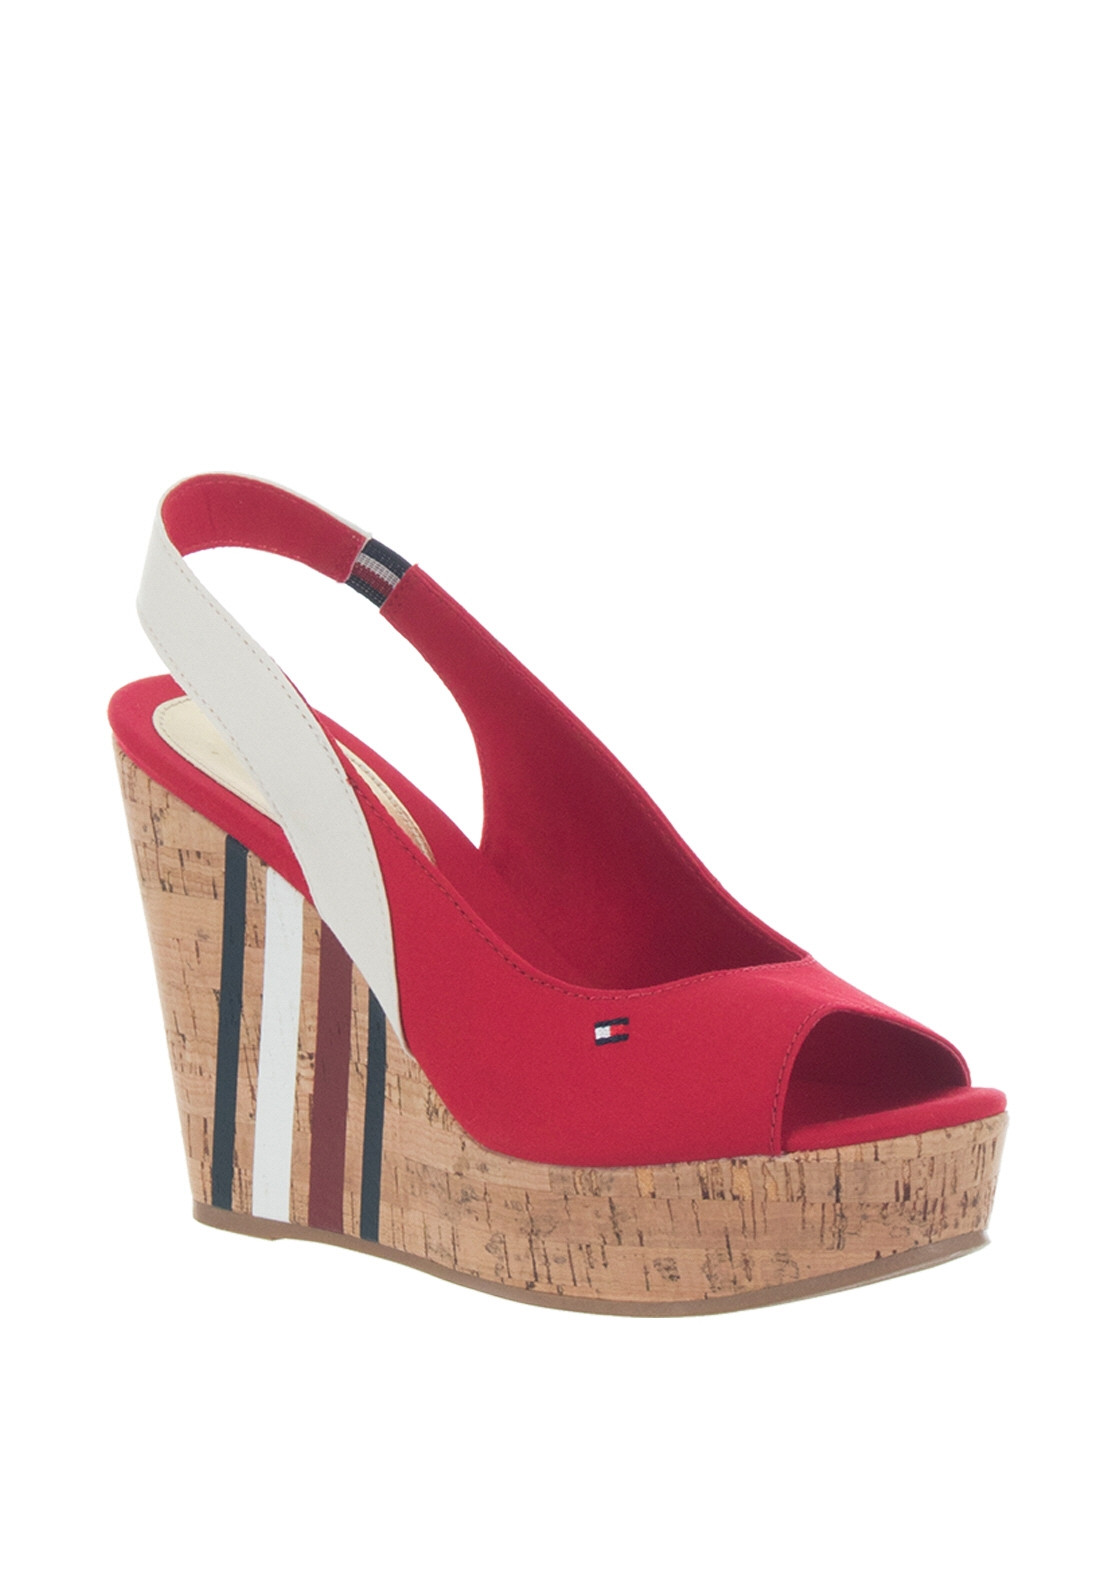 57516f1022 Tommy Hilfiger Womens Signature Slingback Wedge Sandals, Red. 20% OFF